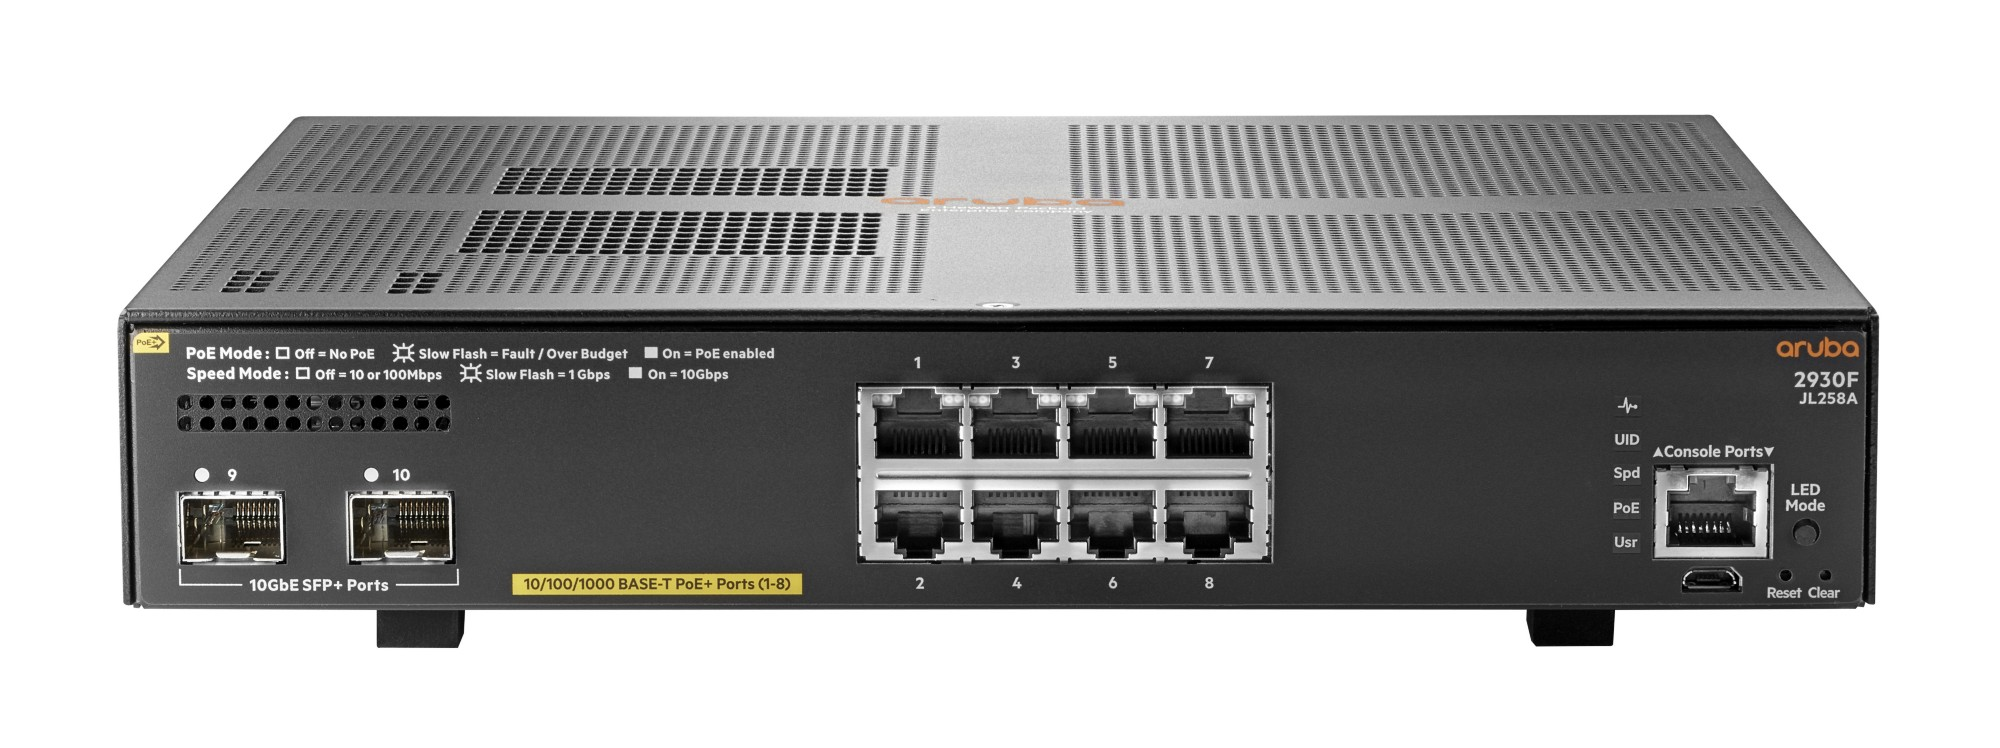 HPE JL258A ARUBA 2930F 8G POE+ 2SFP+ MANAGED NETWORK SWITCH L3 GIGABIT ETHERNET (10/100/1000) POWER OVER (POE) 1U GREY